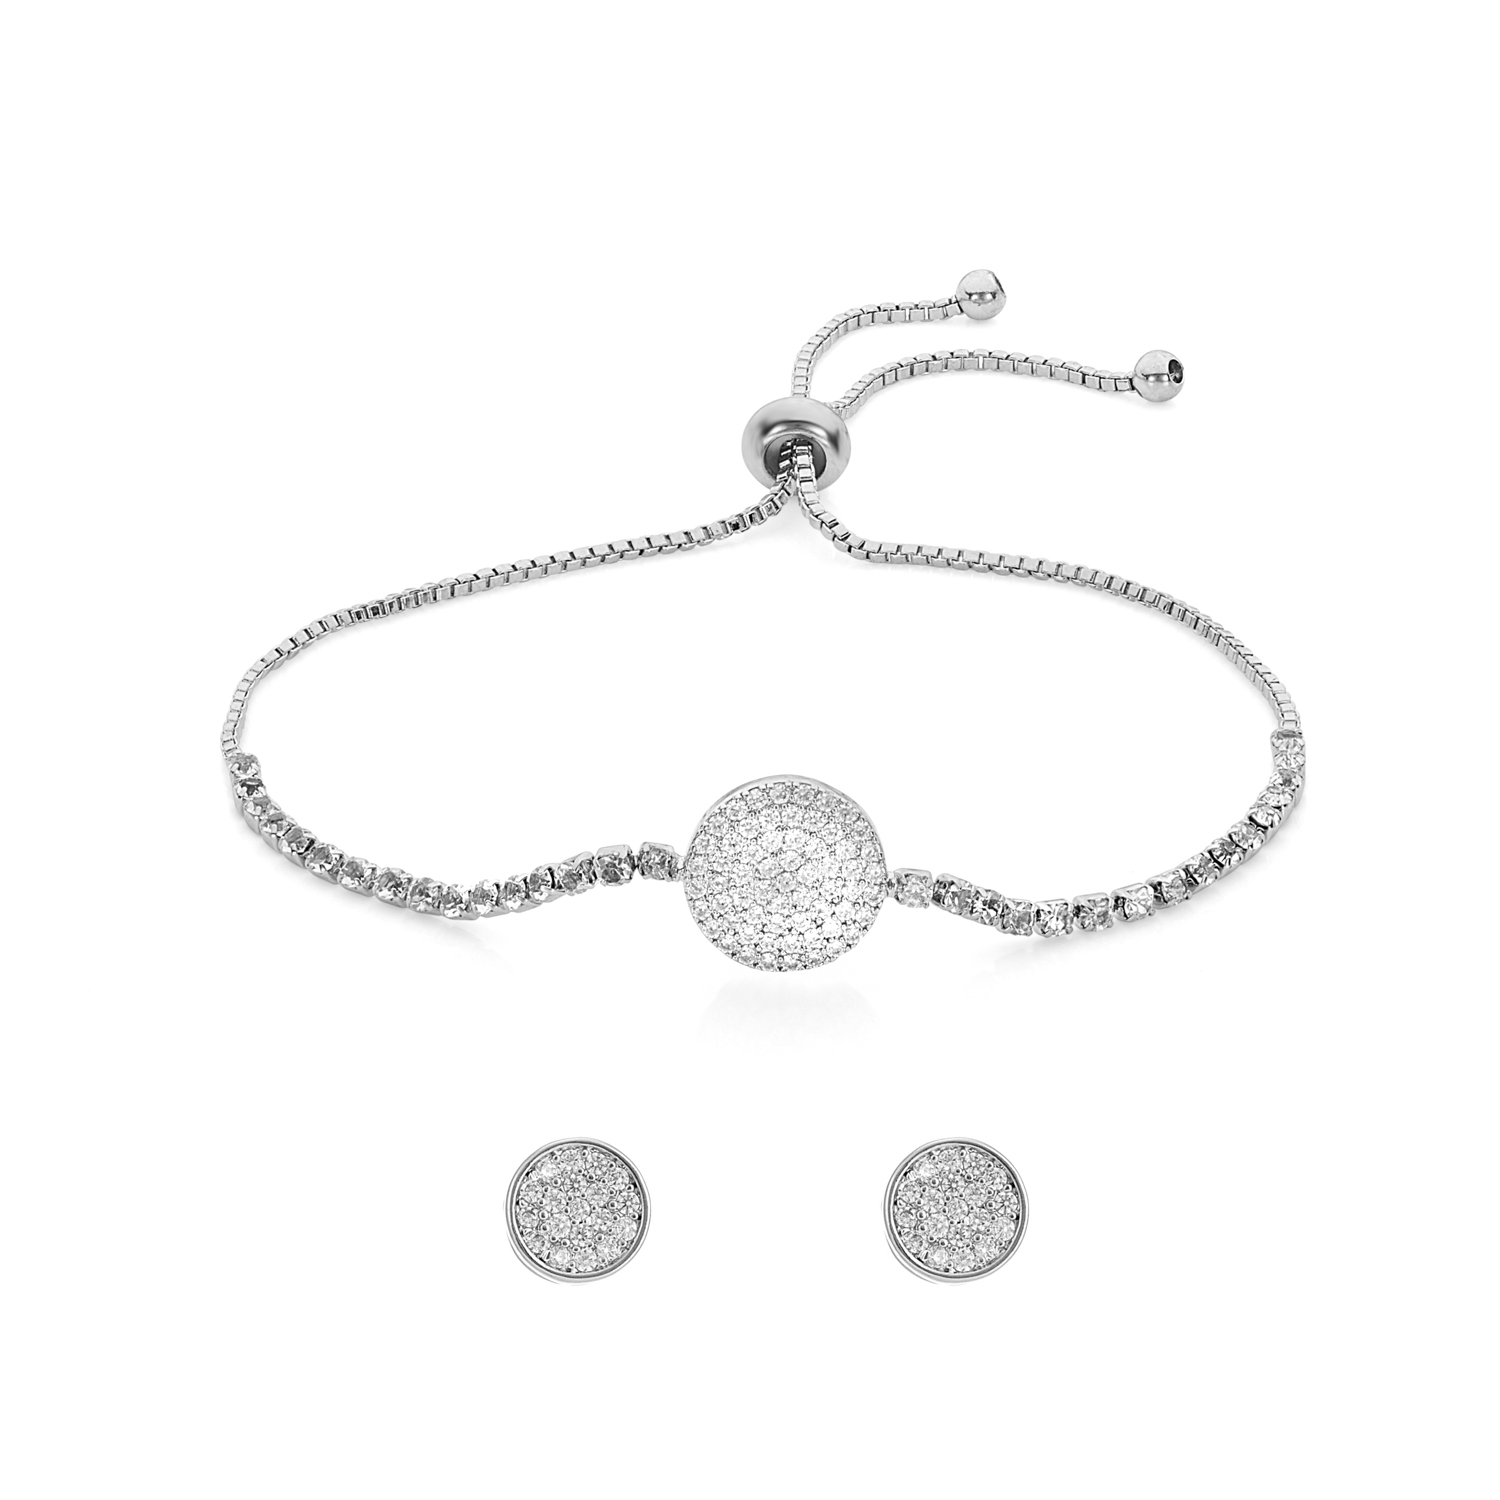 SILVER Arena Toggle Bracelet Gift Set